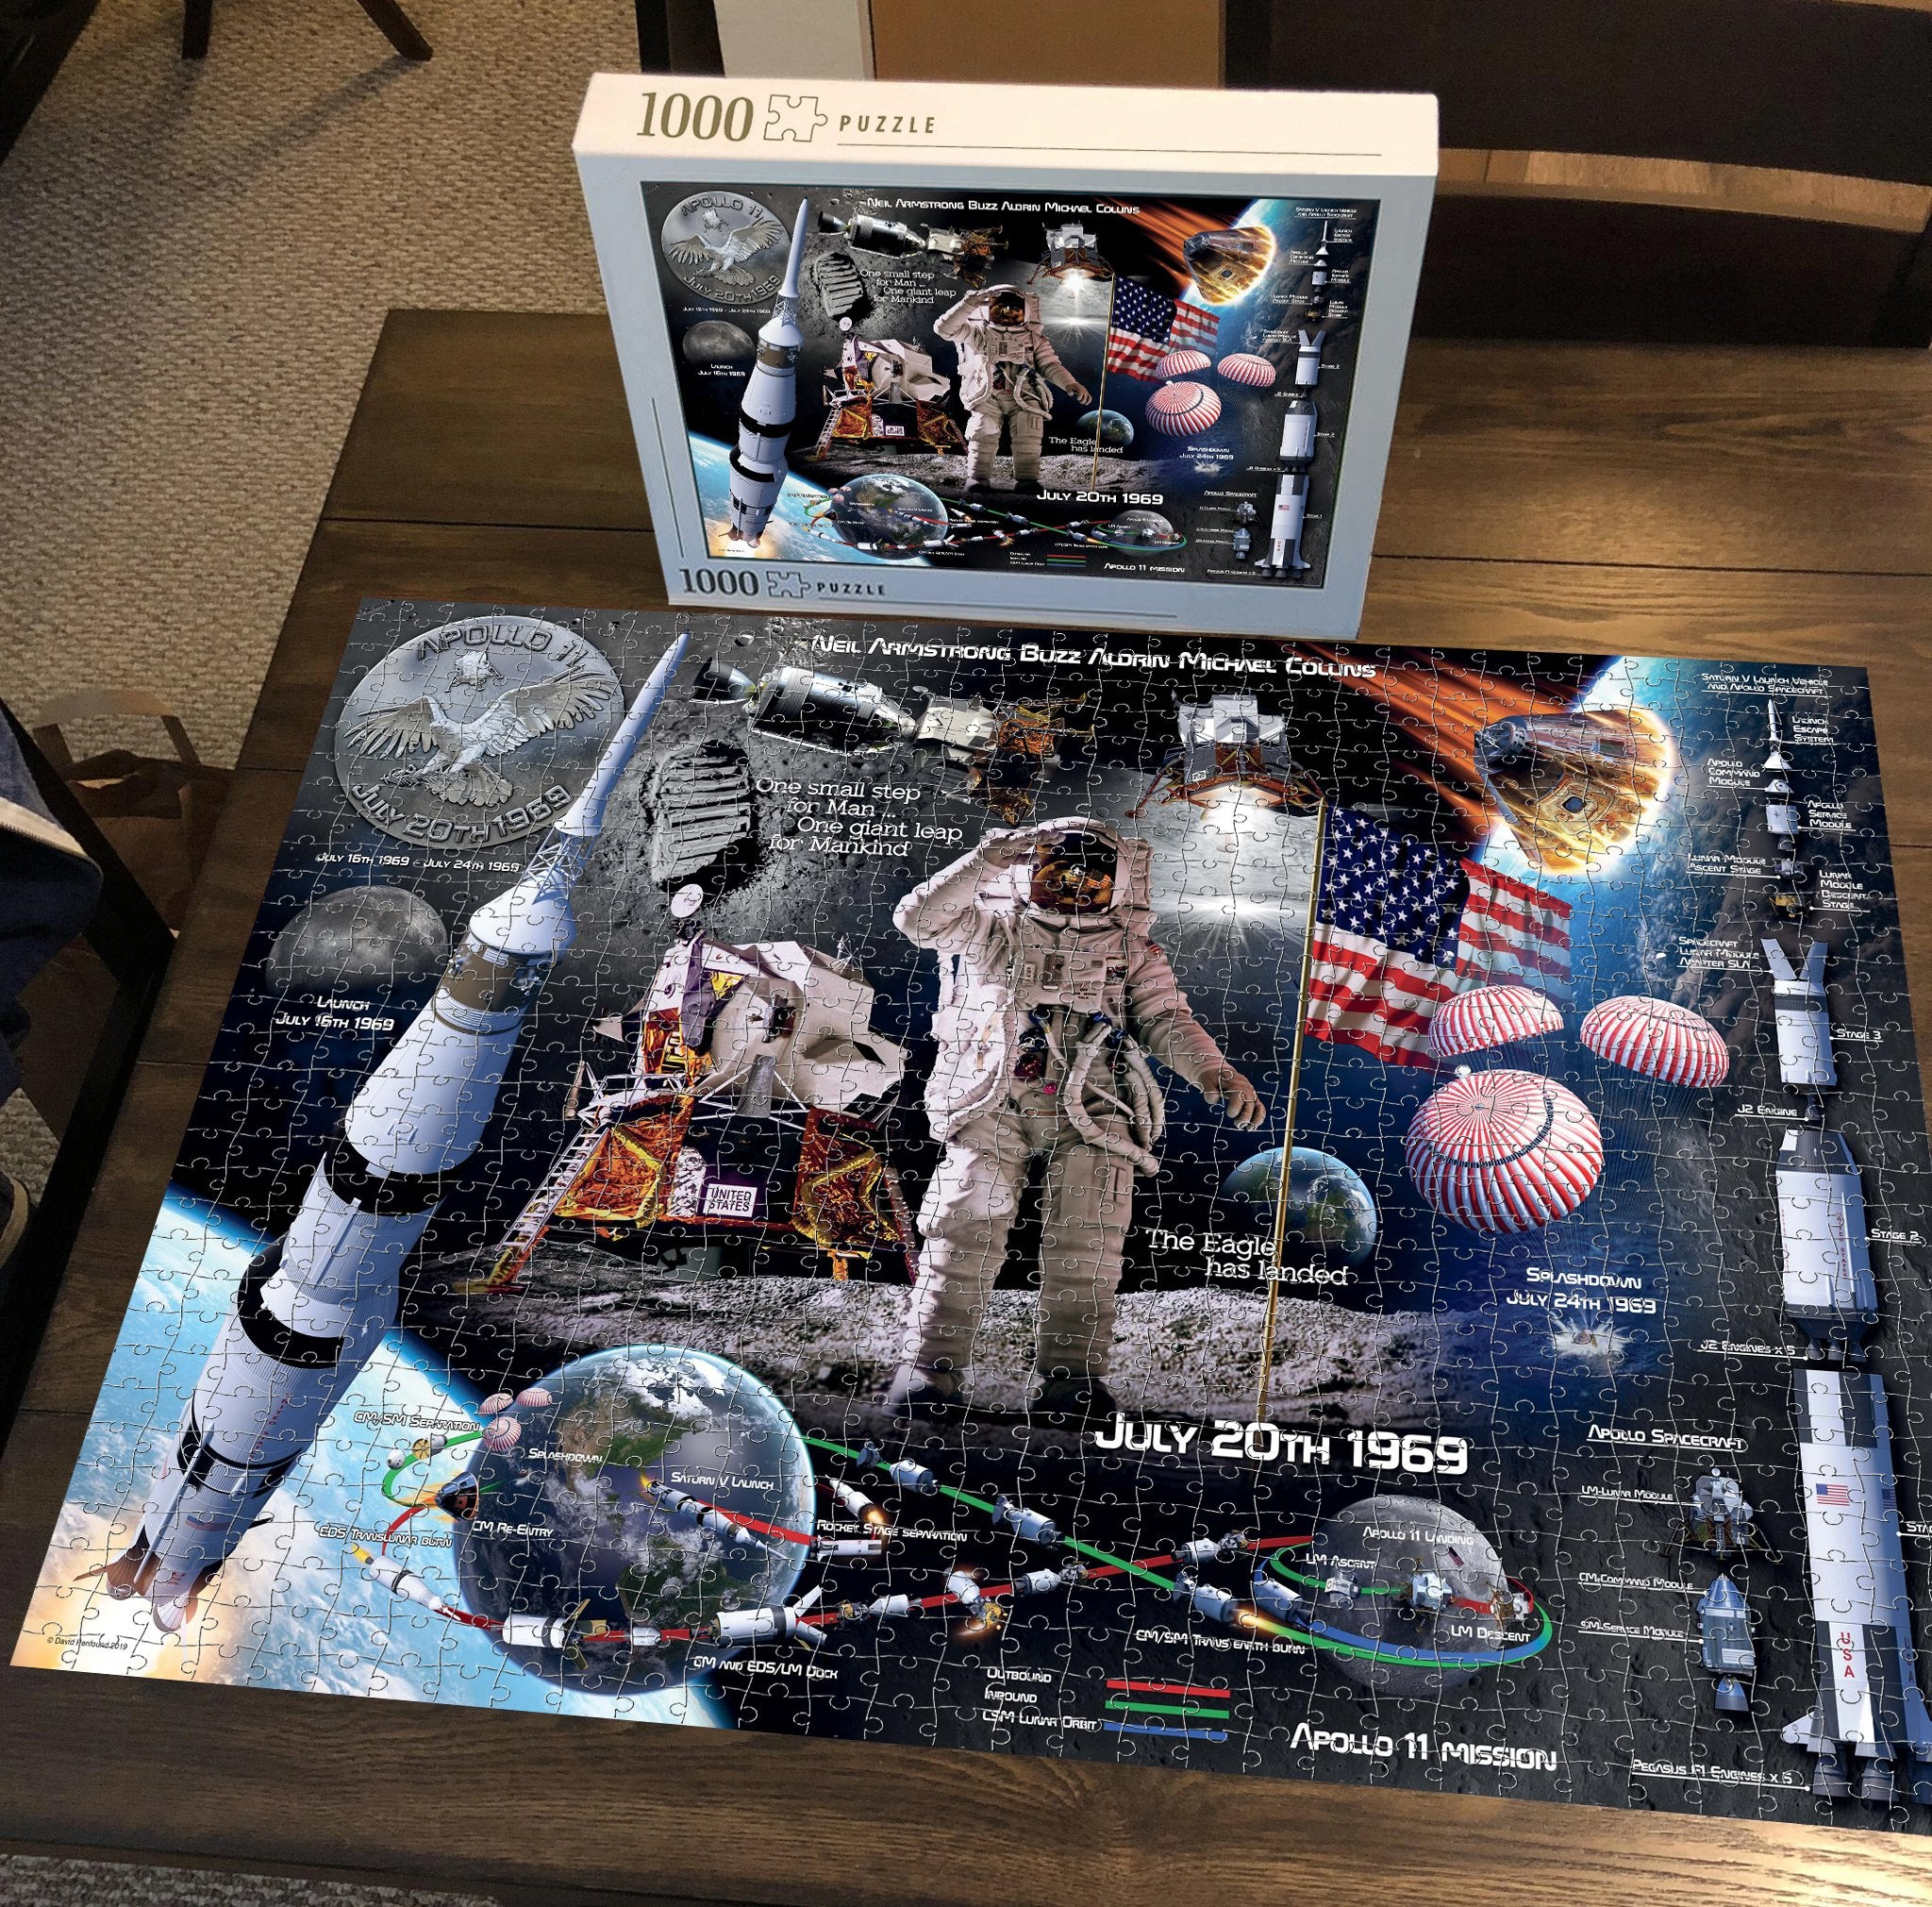 Moon Landing 50th Anniversary 1000 Piece Jigsaw Puzzle